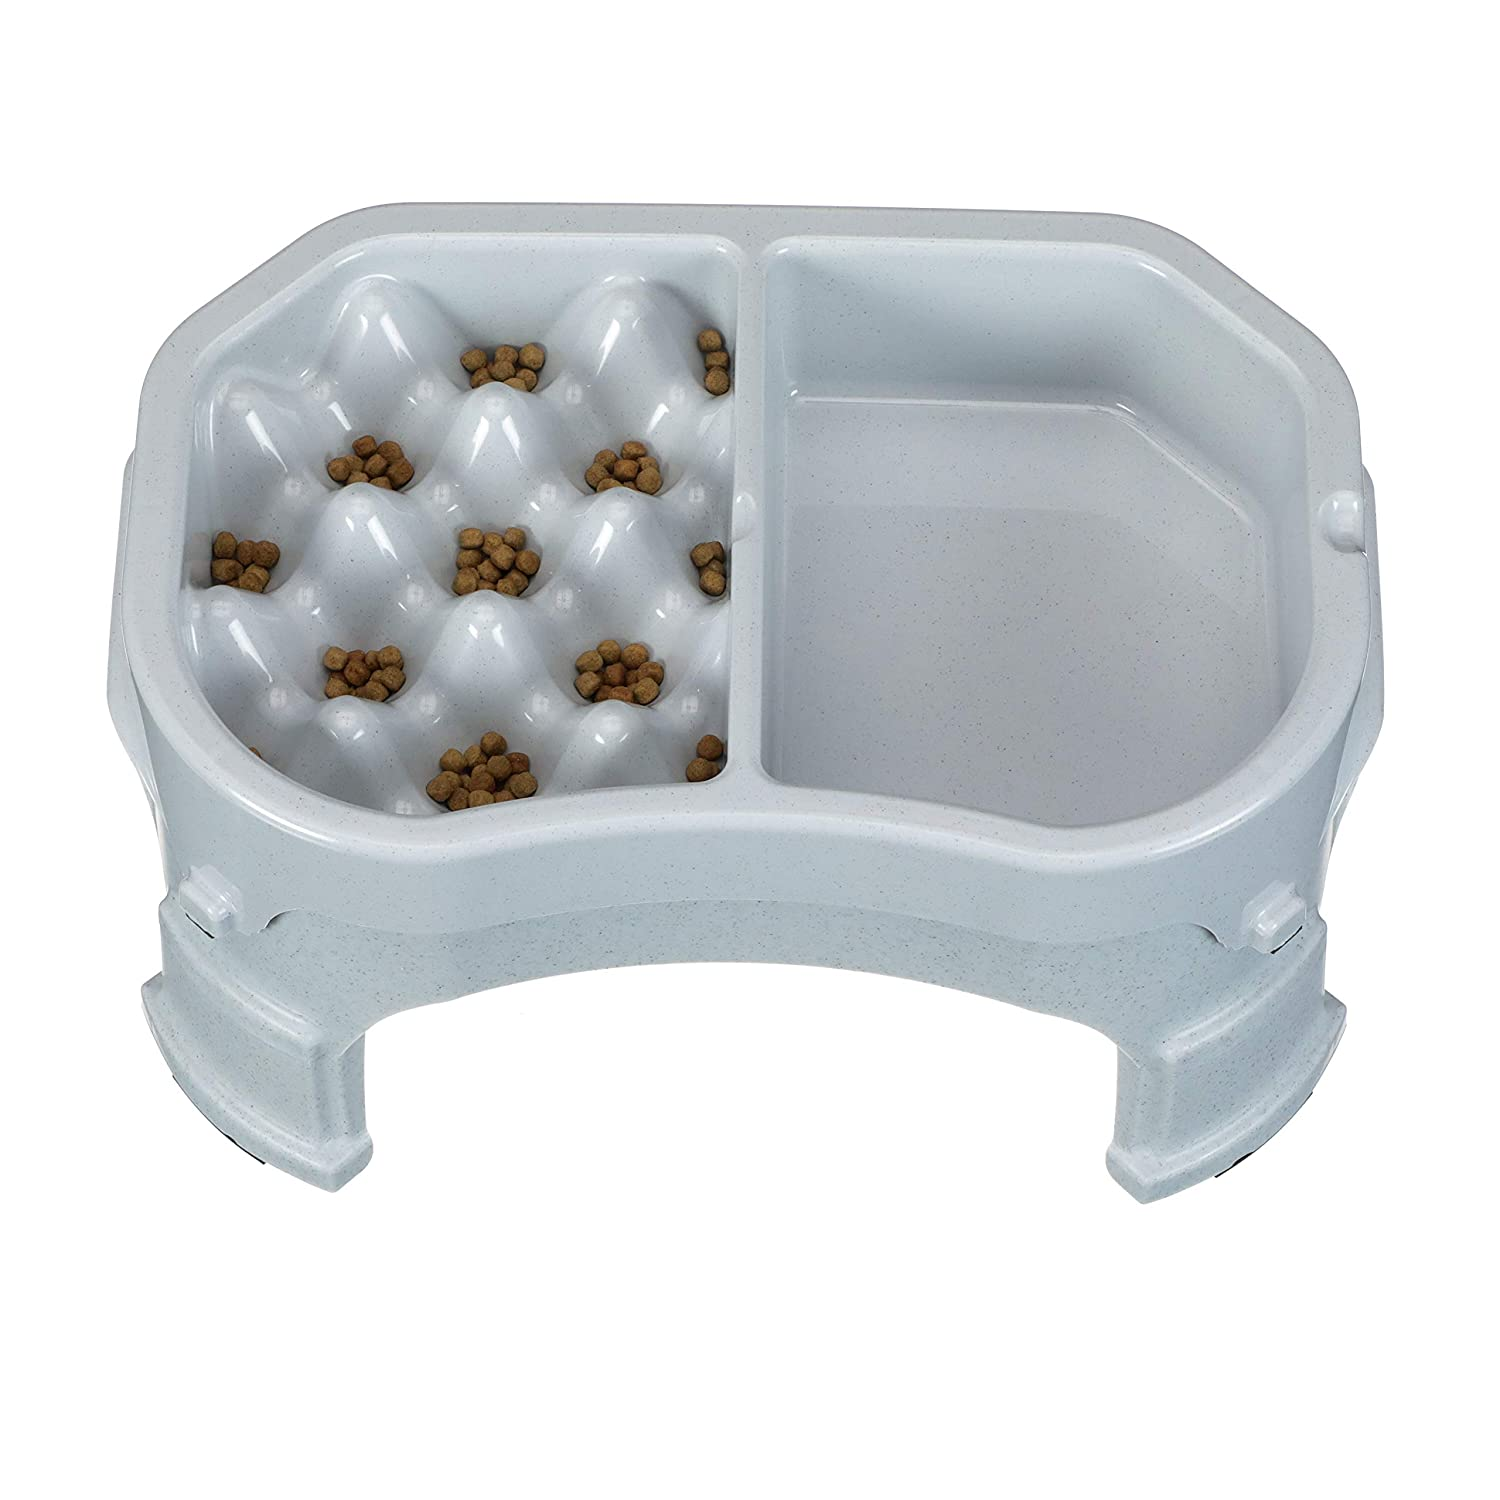 Slow Feeder /& Water Bowl Combo Reduce Bloat /& Improve Digestion Healthy Neater Slow Feeder Double Diner Dog Bowl Neater Pet Brands